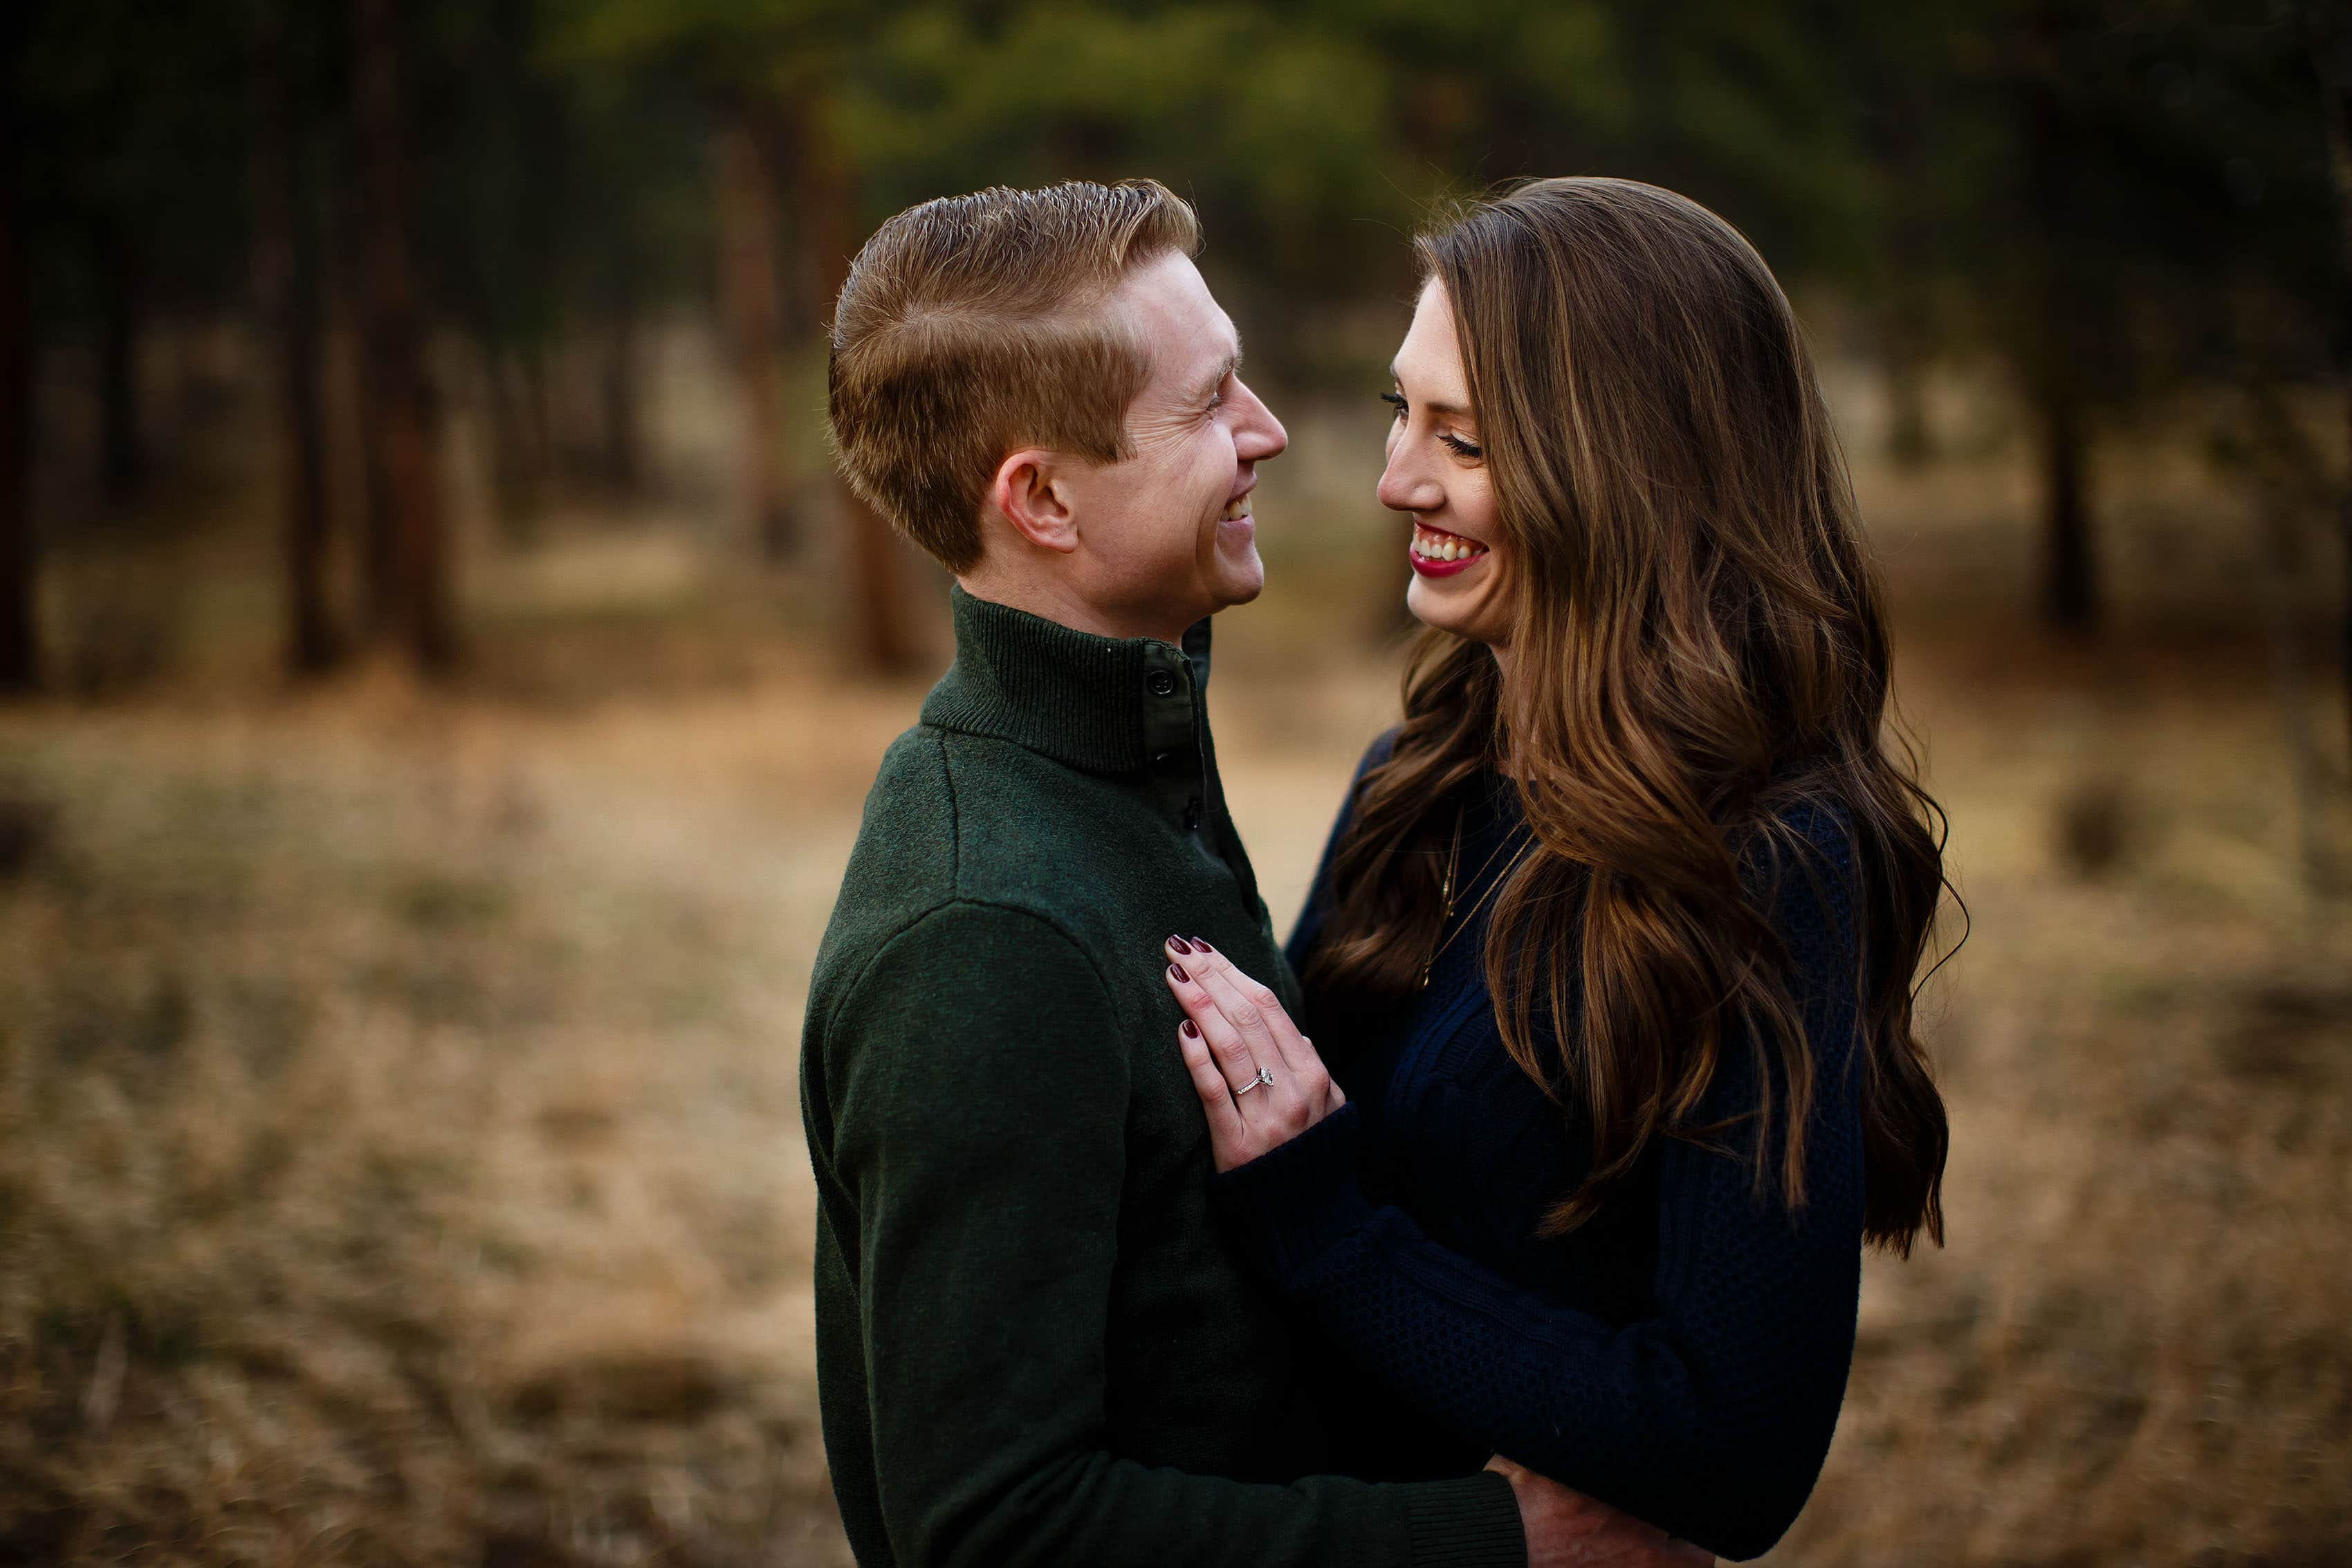 James and Hannah laugh together during their engagement session at Alderfer Three Sisters